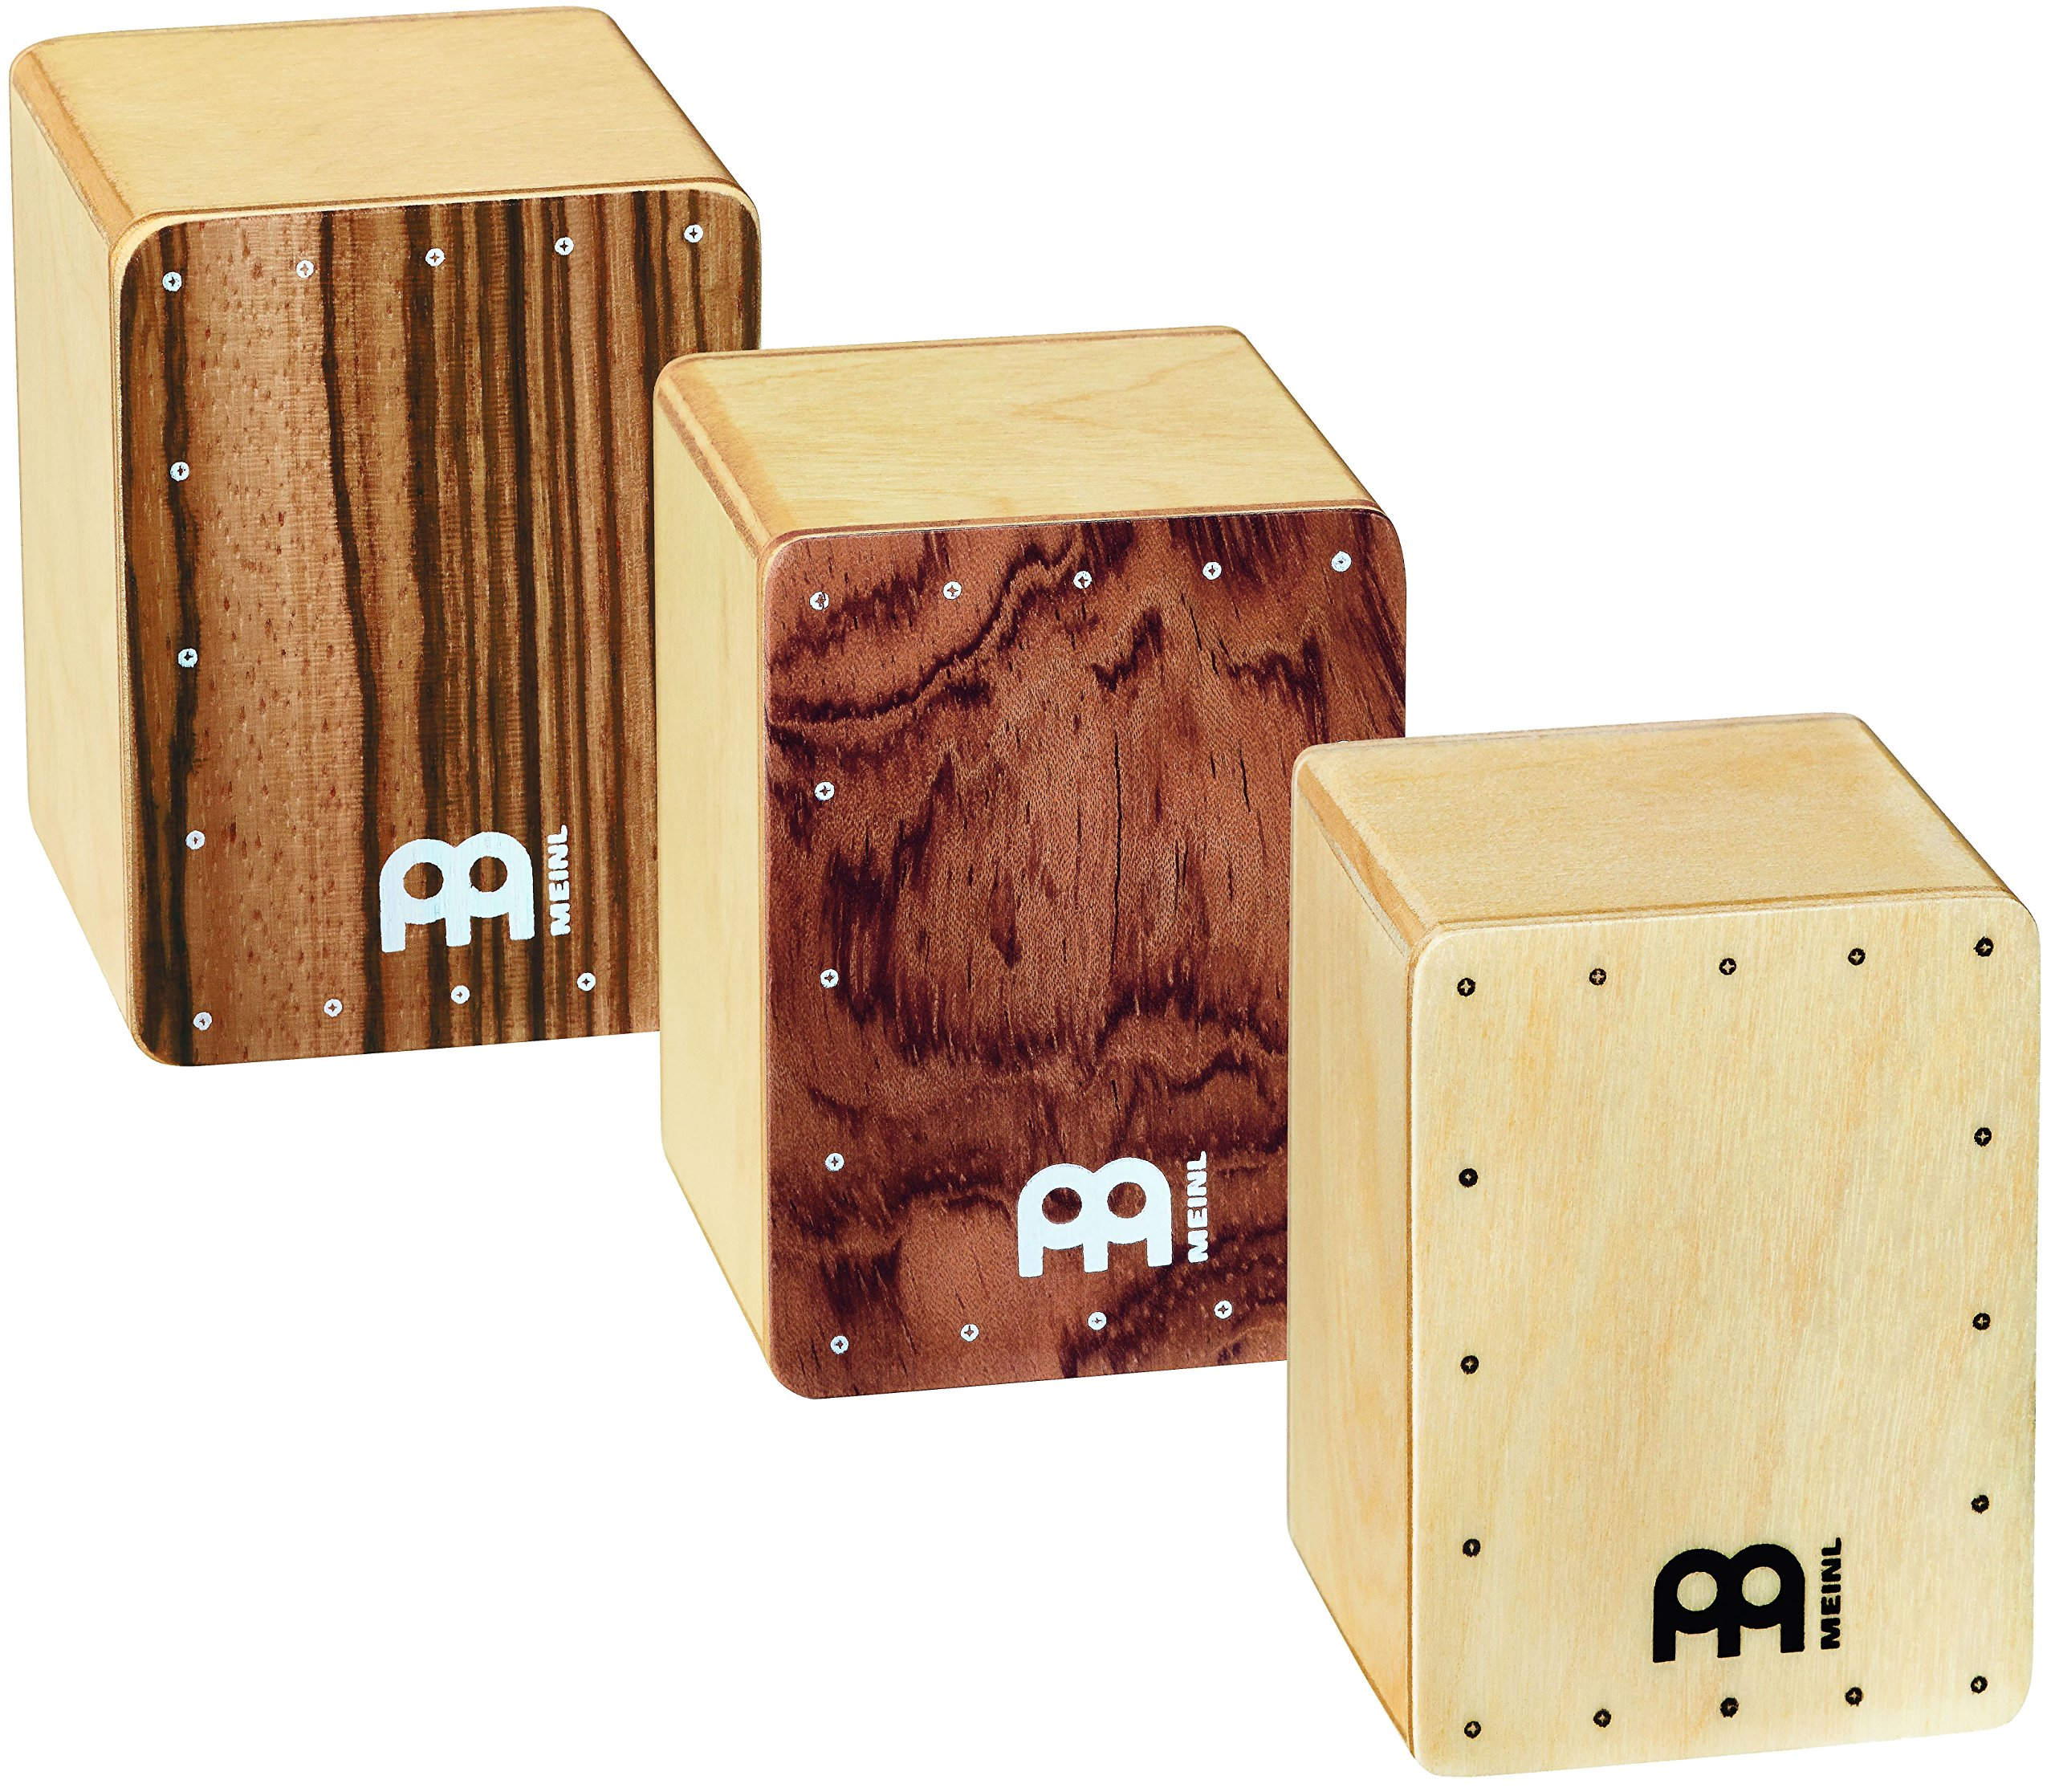 Meinl Percussion Mini Cajon Shaker 3-Piece Set Made in Europe-Baltic Birch Body, 2-Year Warranty (SH50-SET) by Meinl Percussion